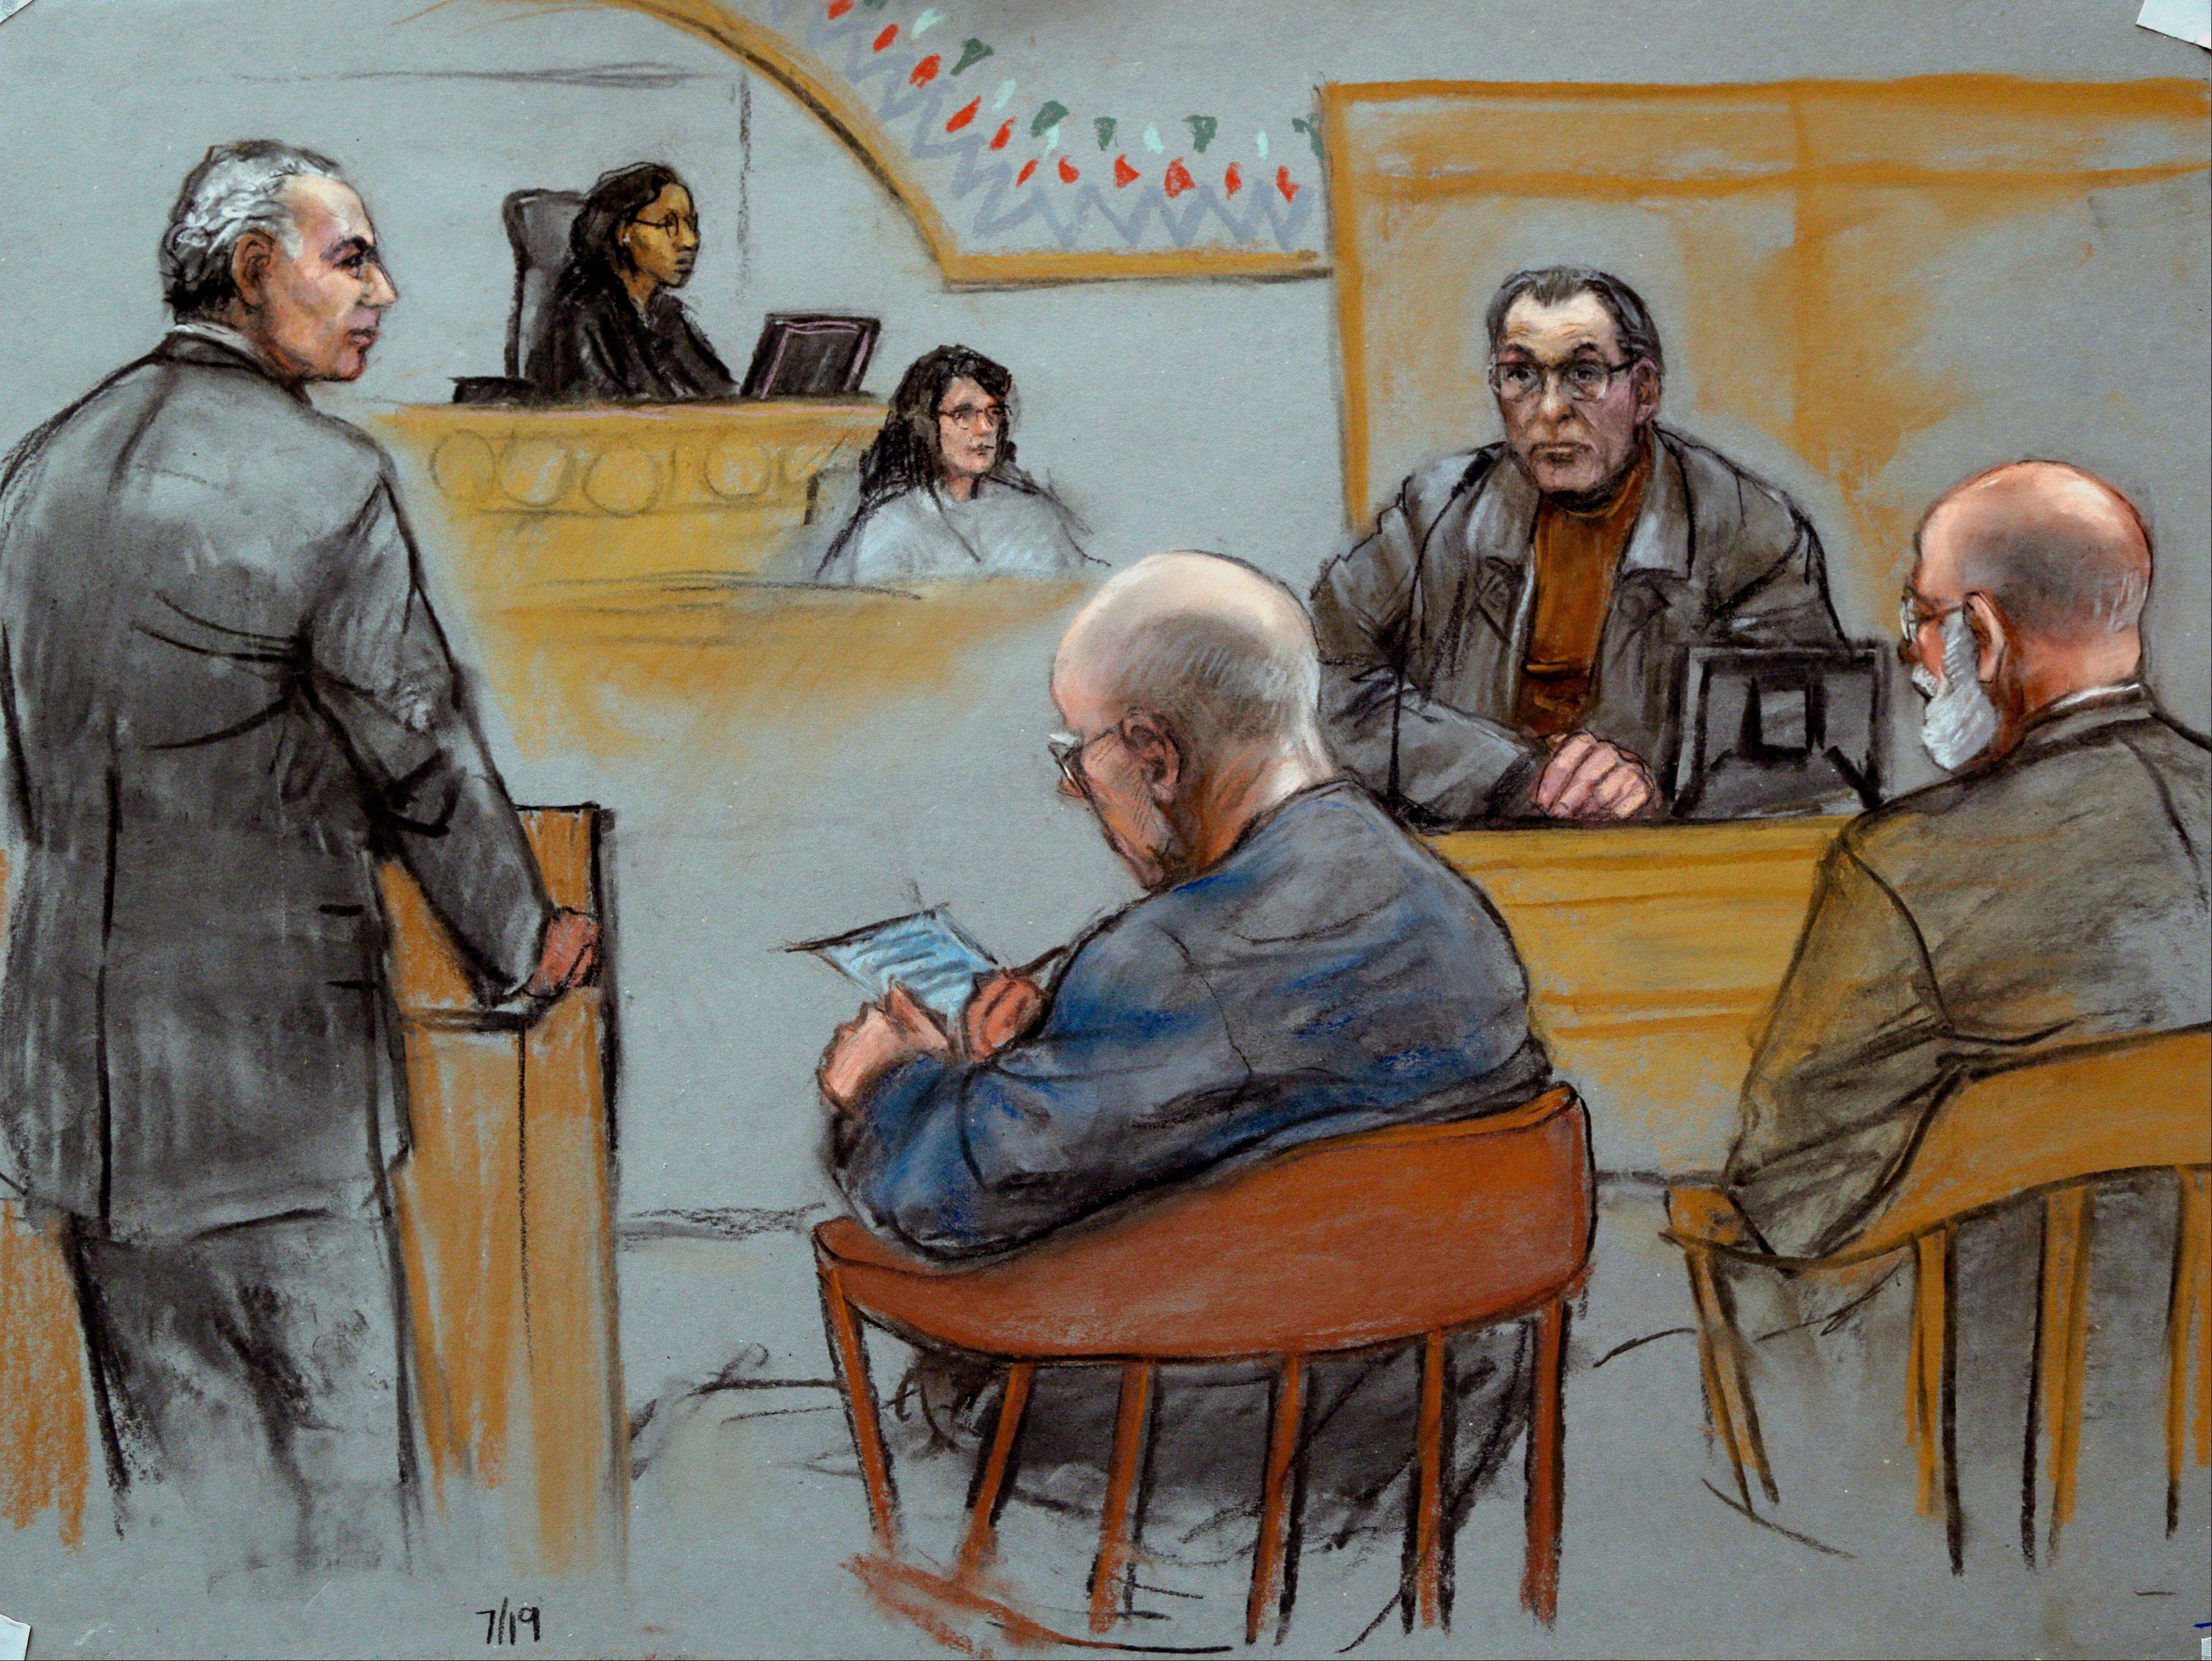 This courtroom sketch depicts Stephen �The Rifleman� Flemmi, upper right, on the witness stand as defendant James �Whitey� Bulger listens, seated middle, next to his defense attorney J. W. Carney Jr., seated far right, while prosecutor Fred Wyshak, standing left, questions Flemmi during Bulger�s racketeering and murder trial.